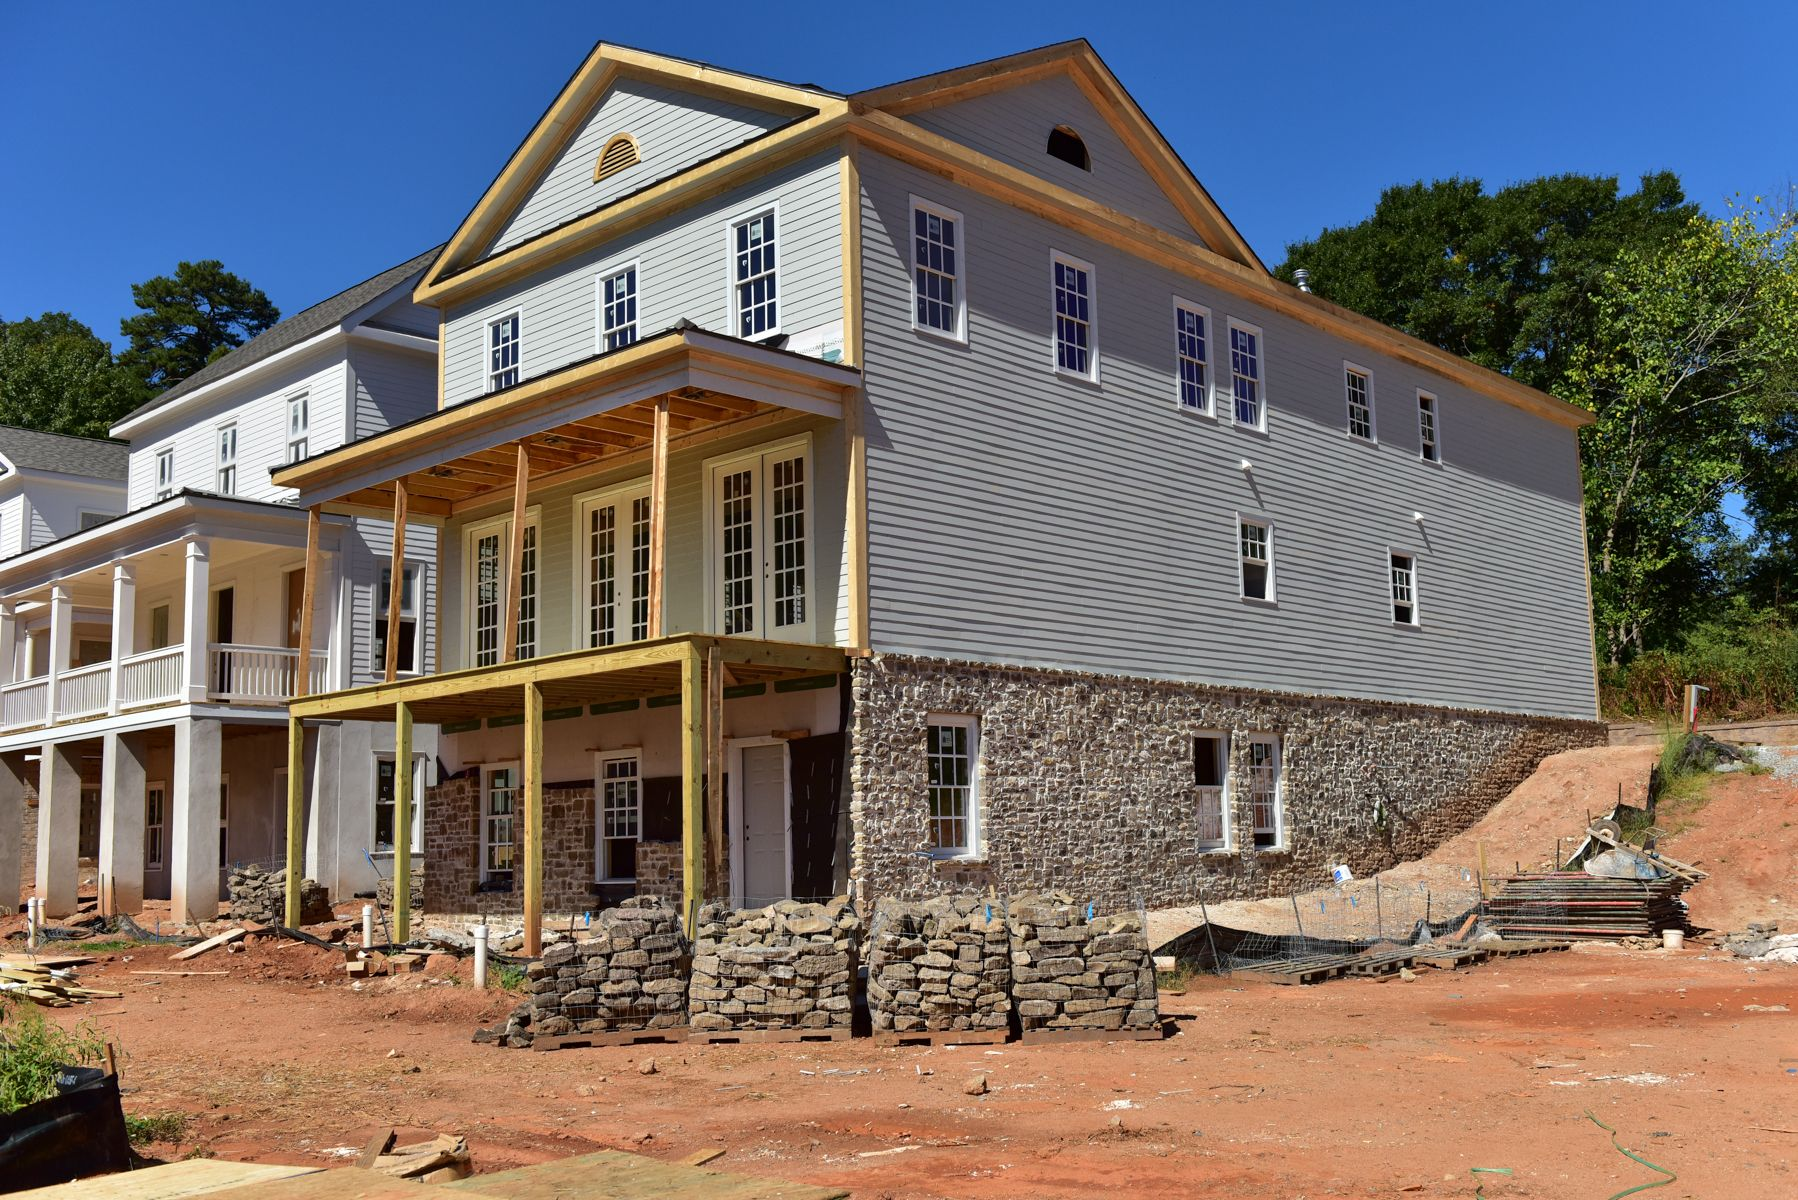 New Homes For Sale In Roswell Ga New Home Communities New Homes For Sale New Homes